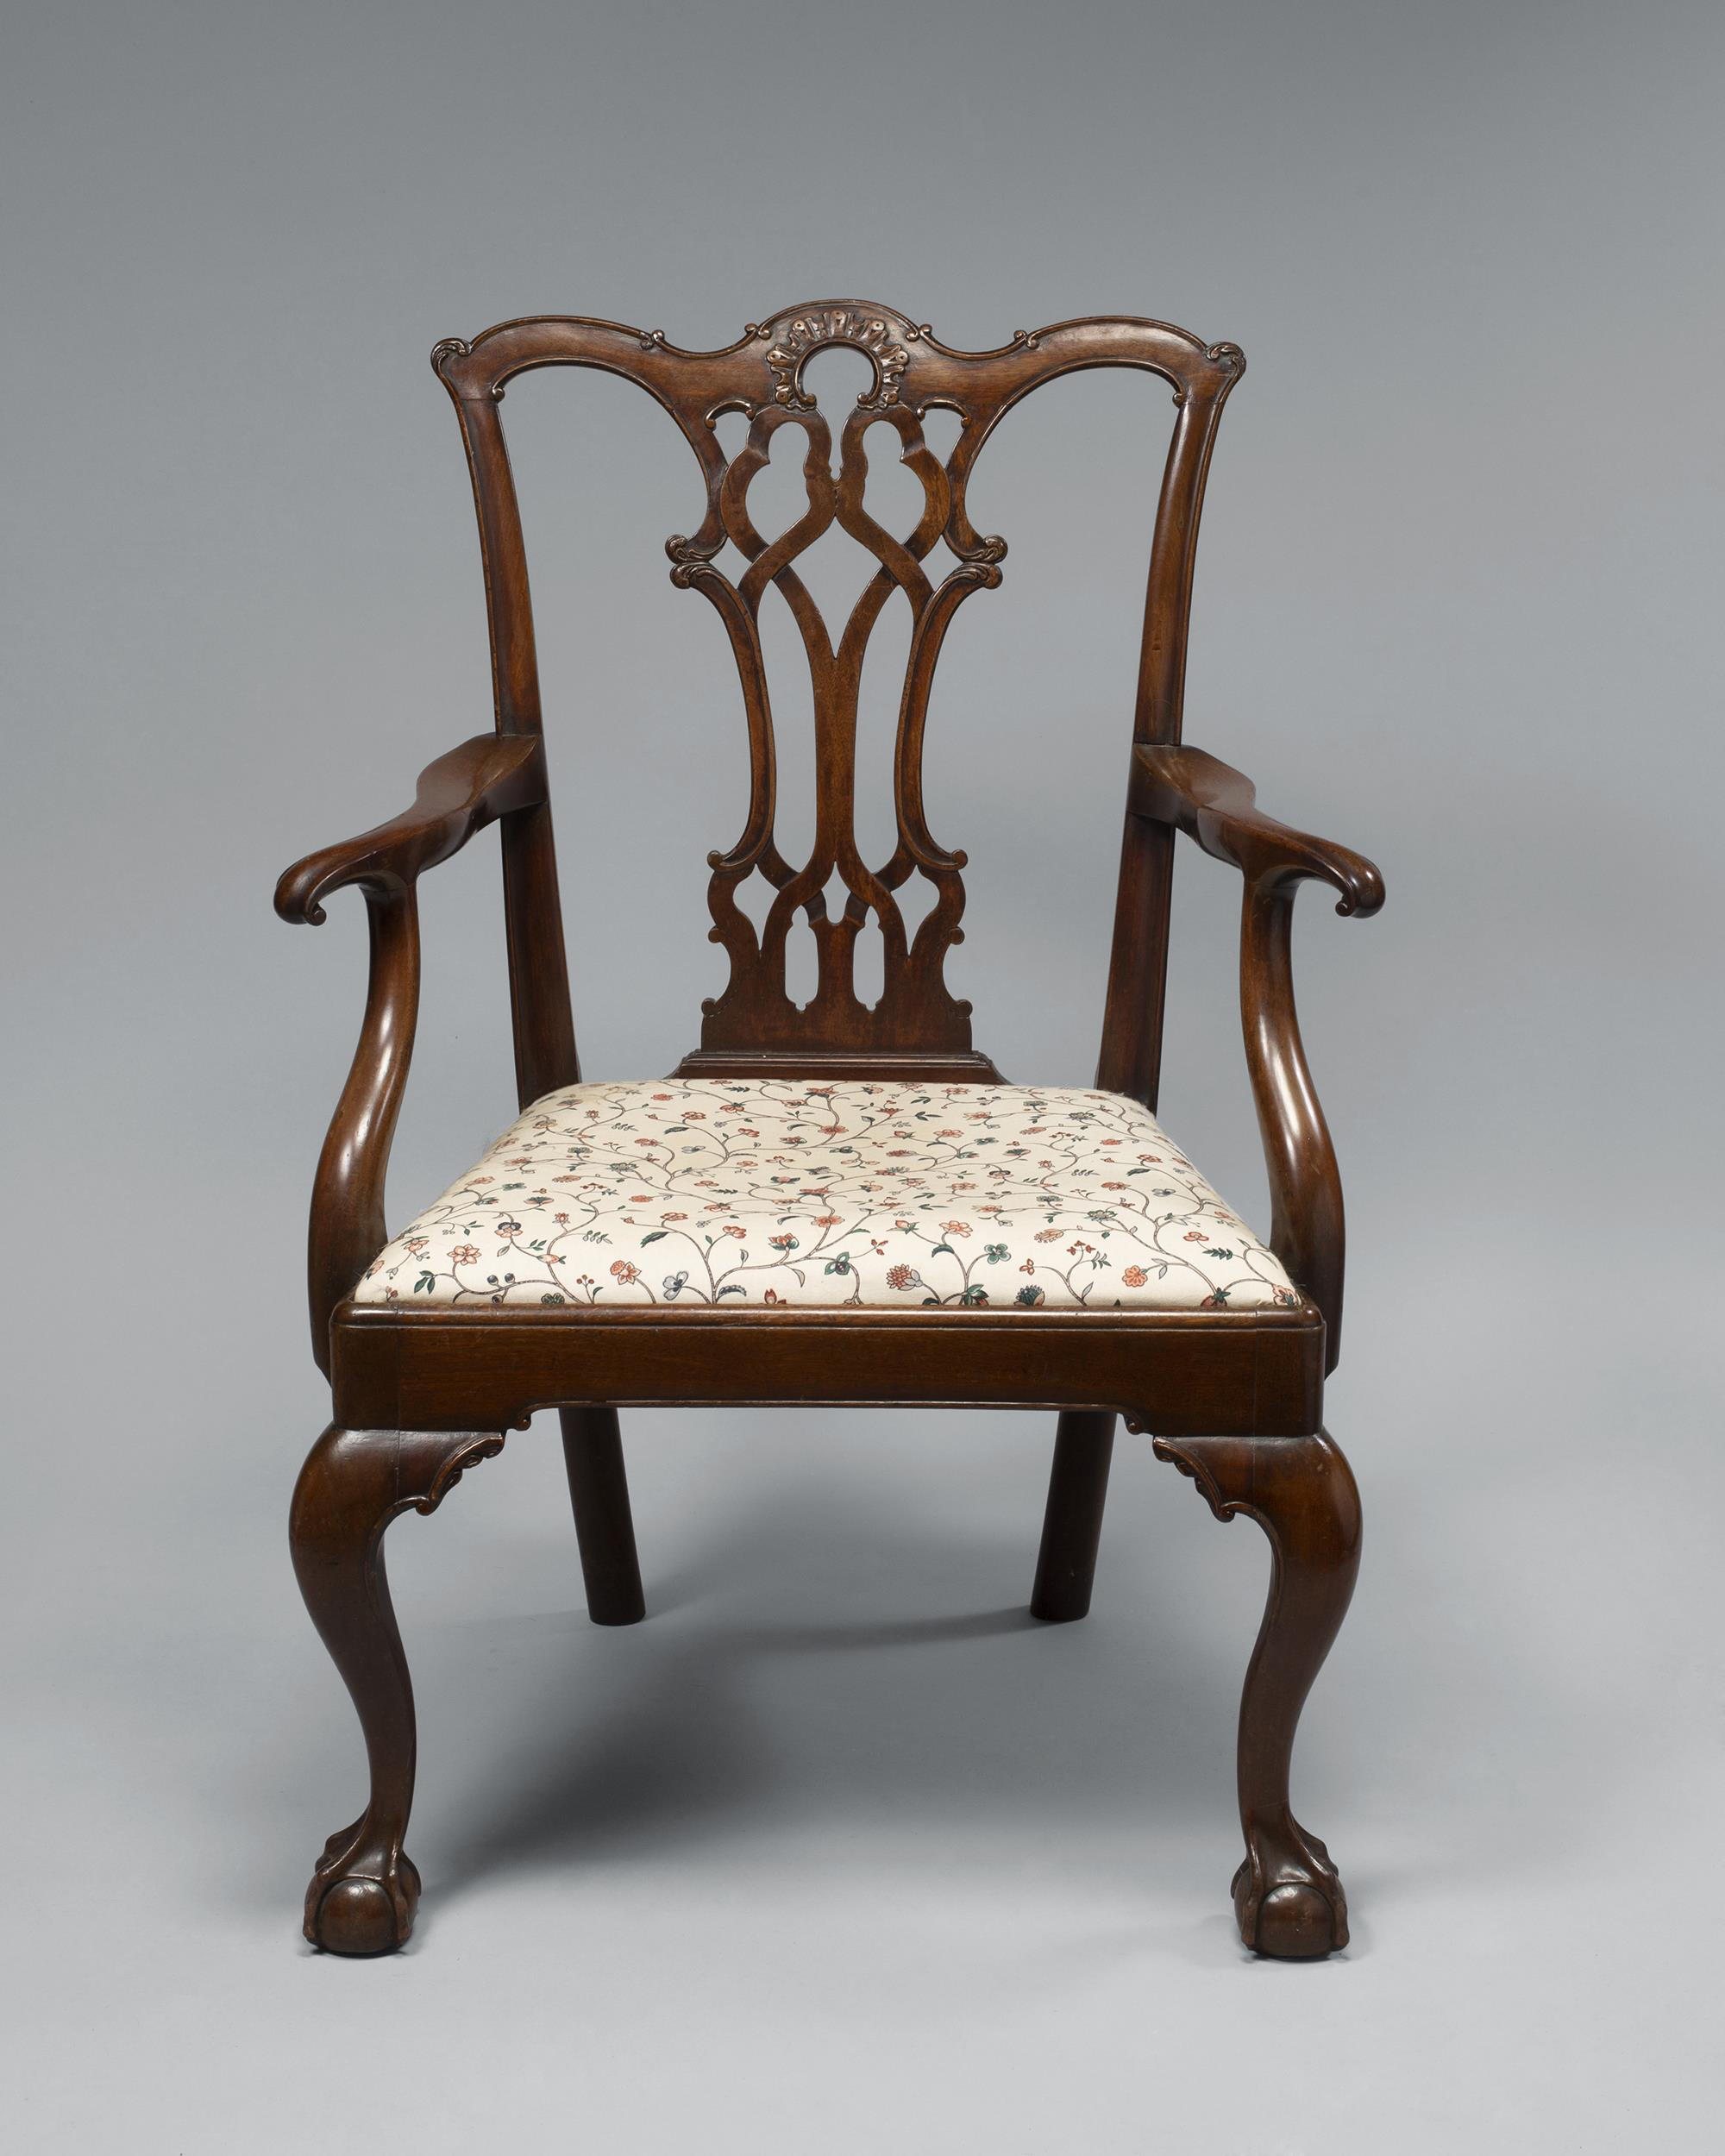 Rare Chippendale Mahogany Open Arm Chair Made and Stamped by Cabinet Maker, William Long